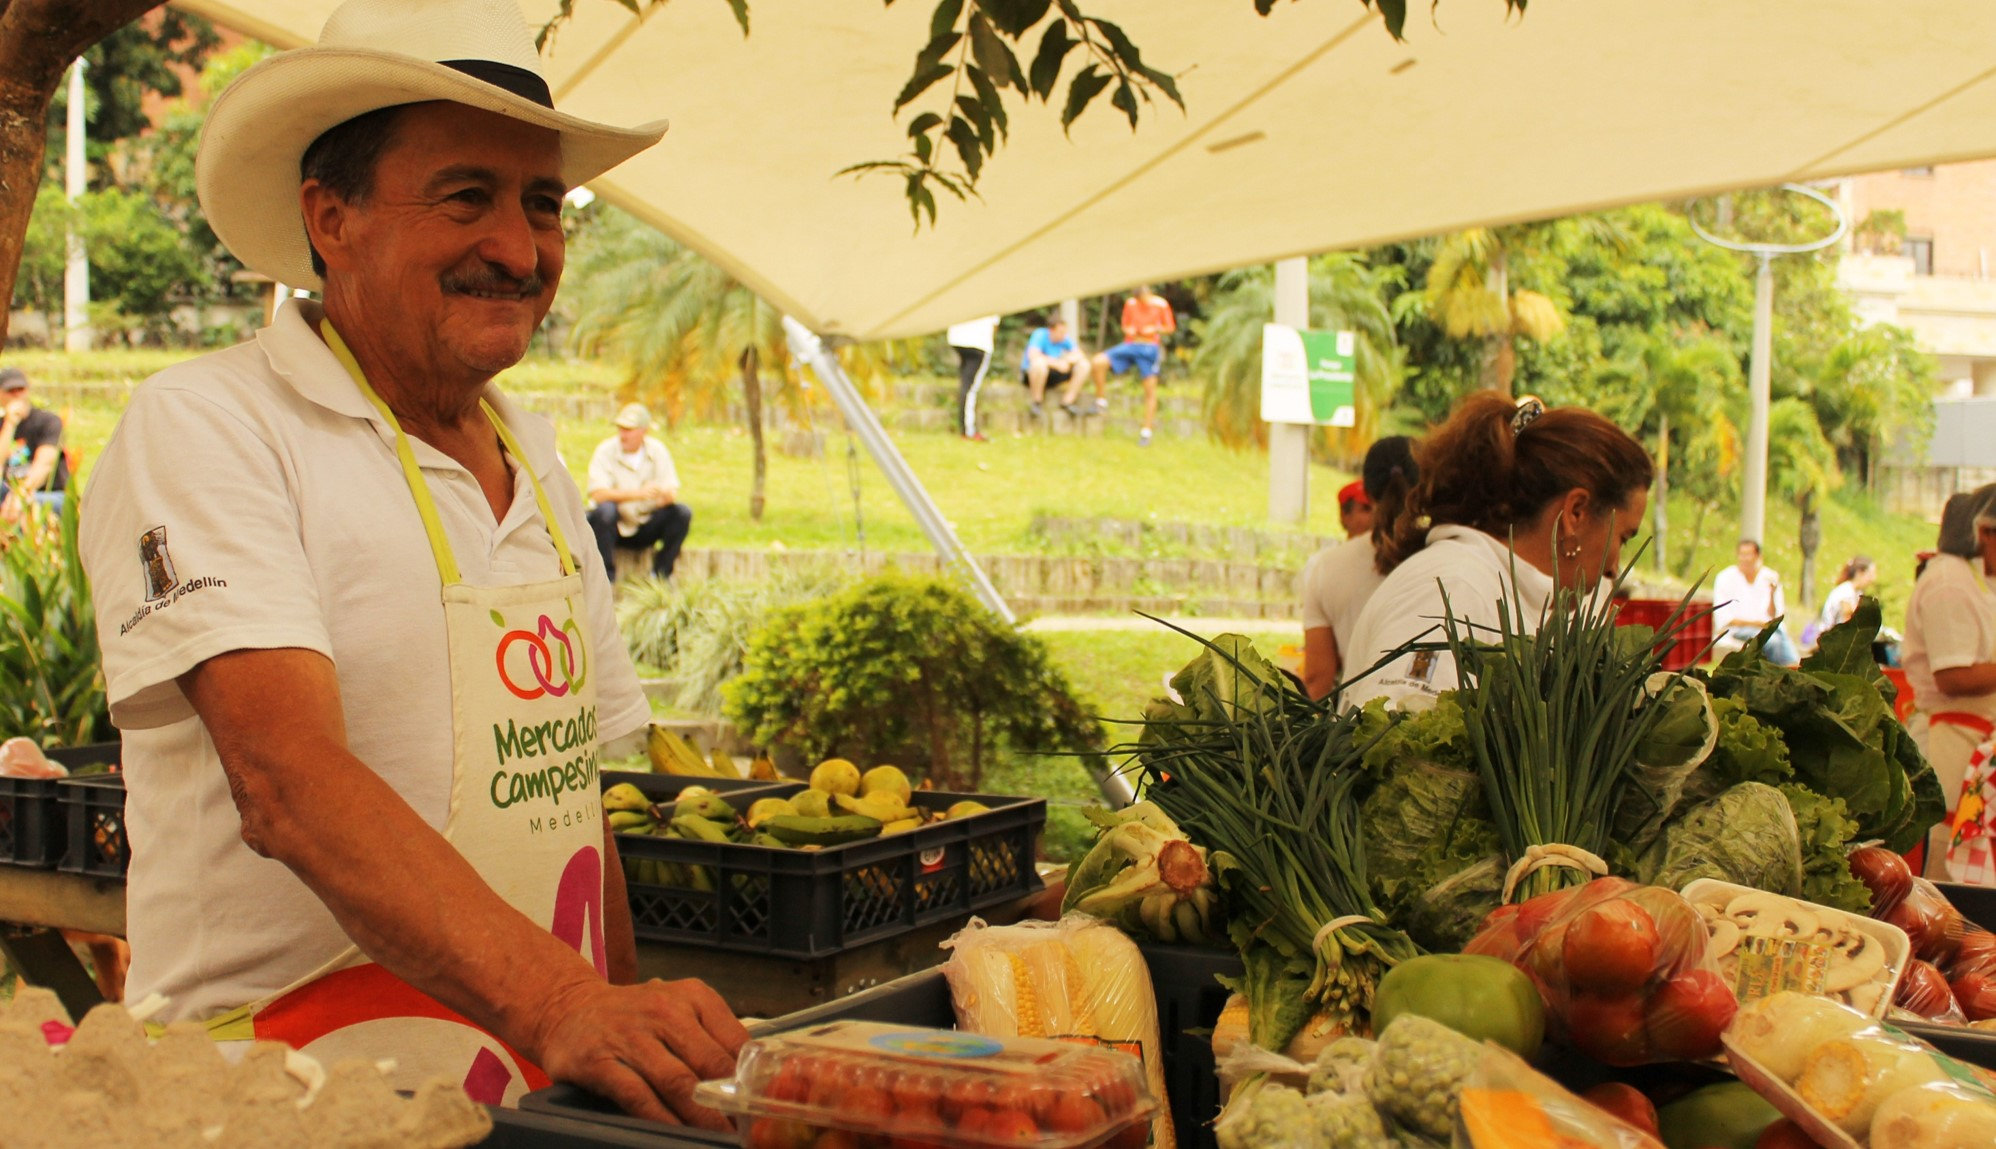 mercados-campesinos Creative Tourism Network